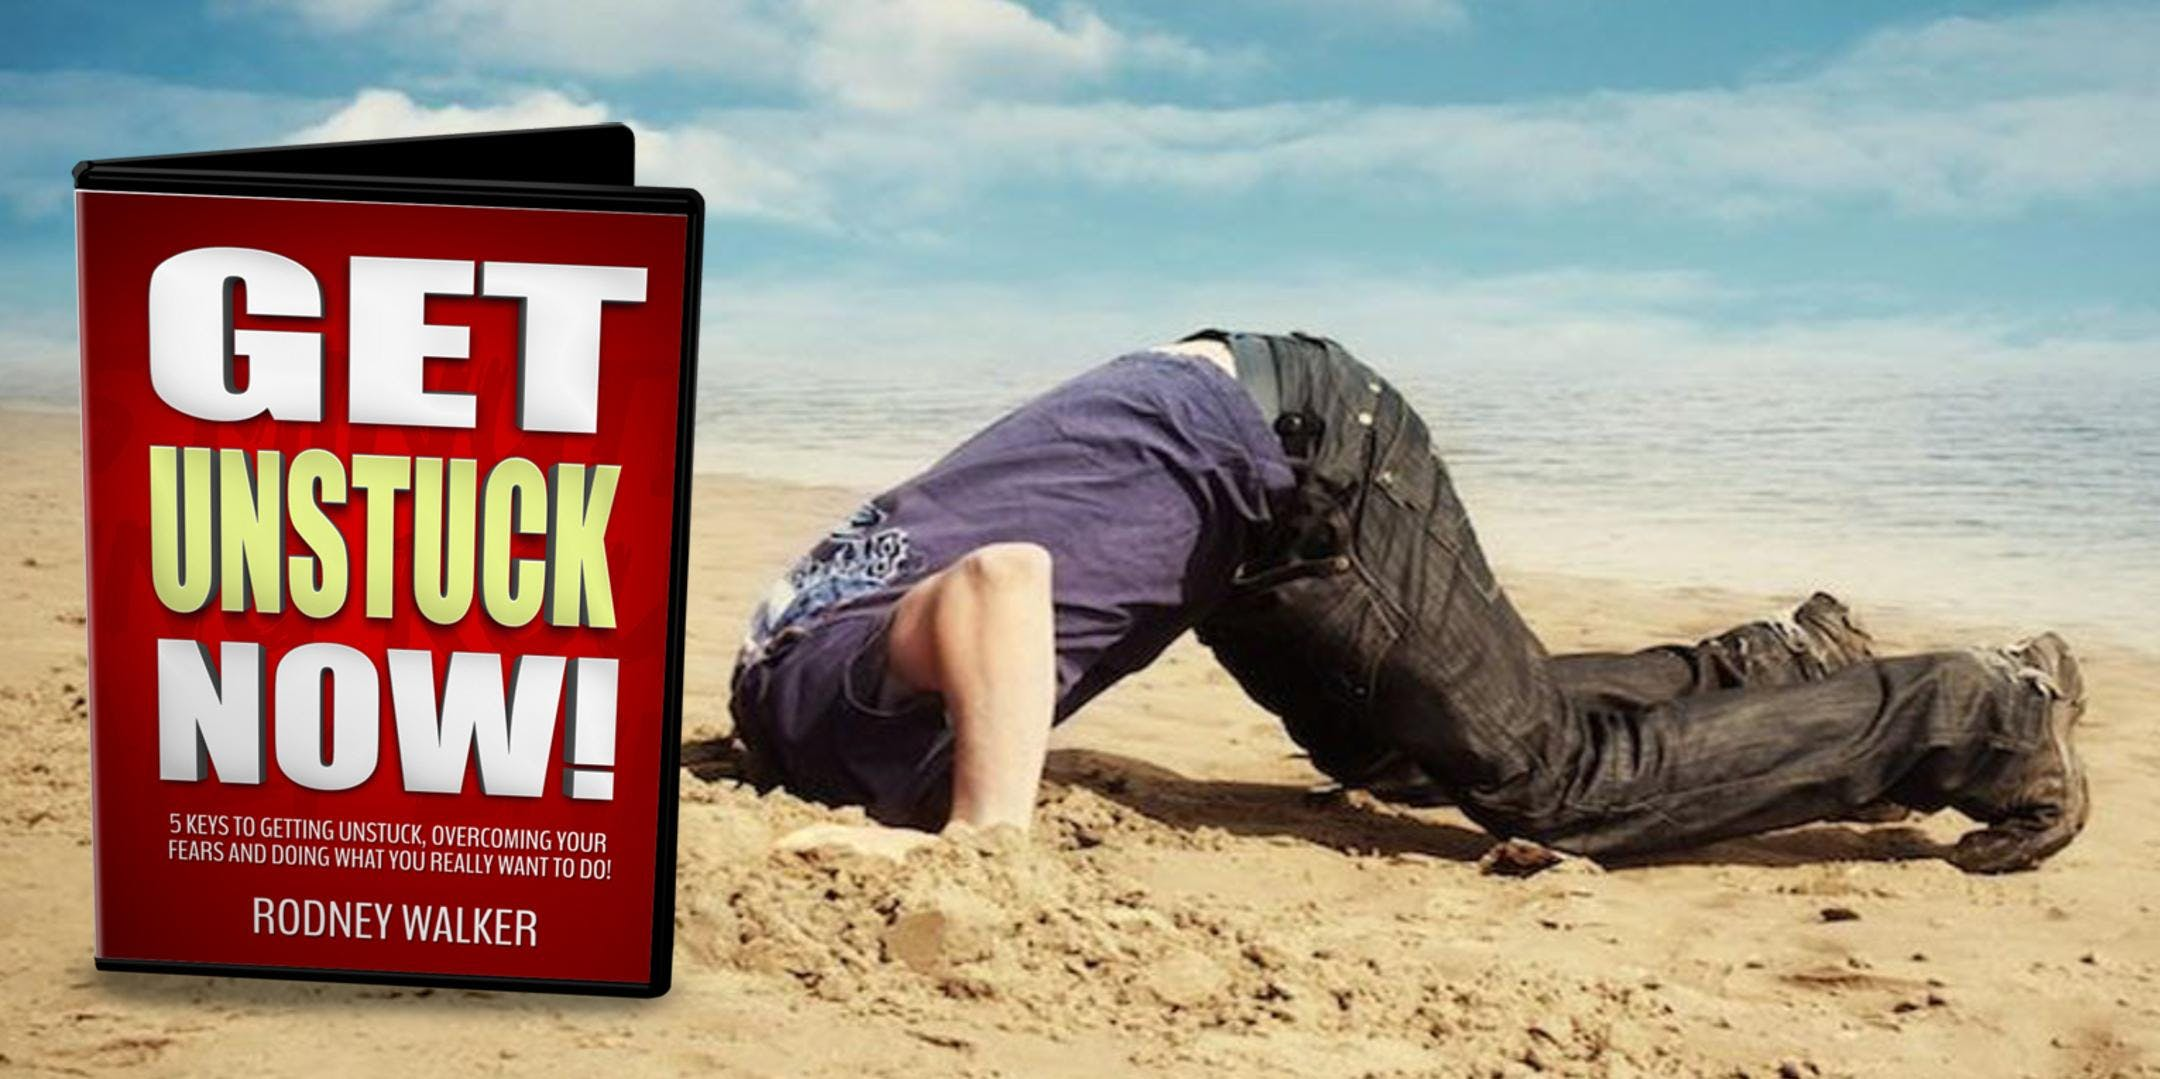 Life Coaching - GET UNSTUCK NOW! New Beginnings - San Diego, California